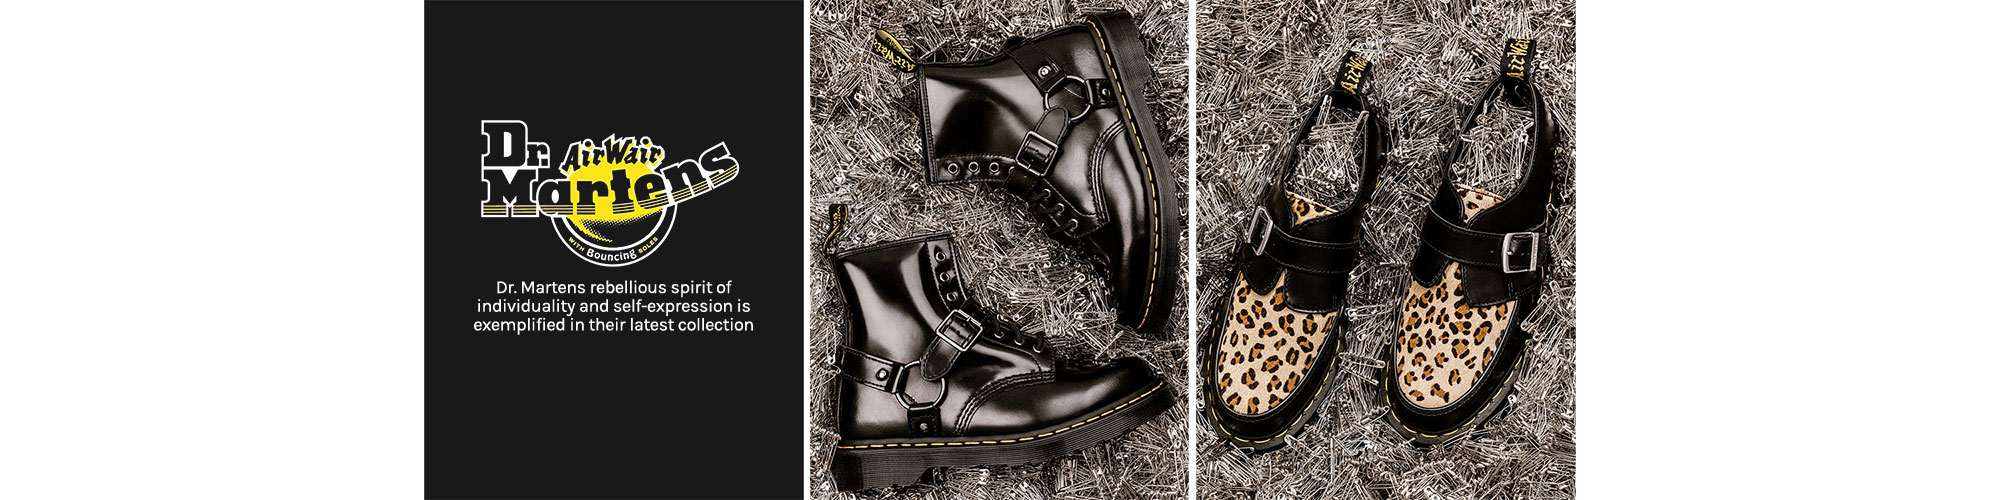 Dr. Martens. Dr. Martens rebellious spirit of individuality and self-expression is exemplified in their latest collection.